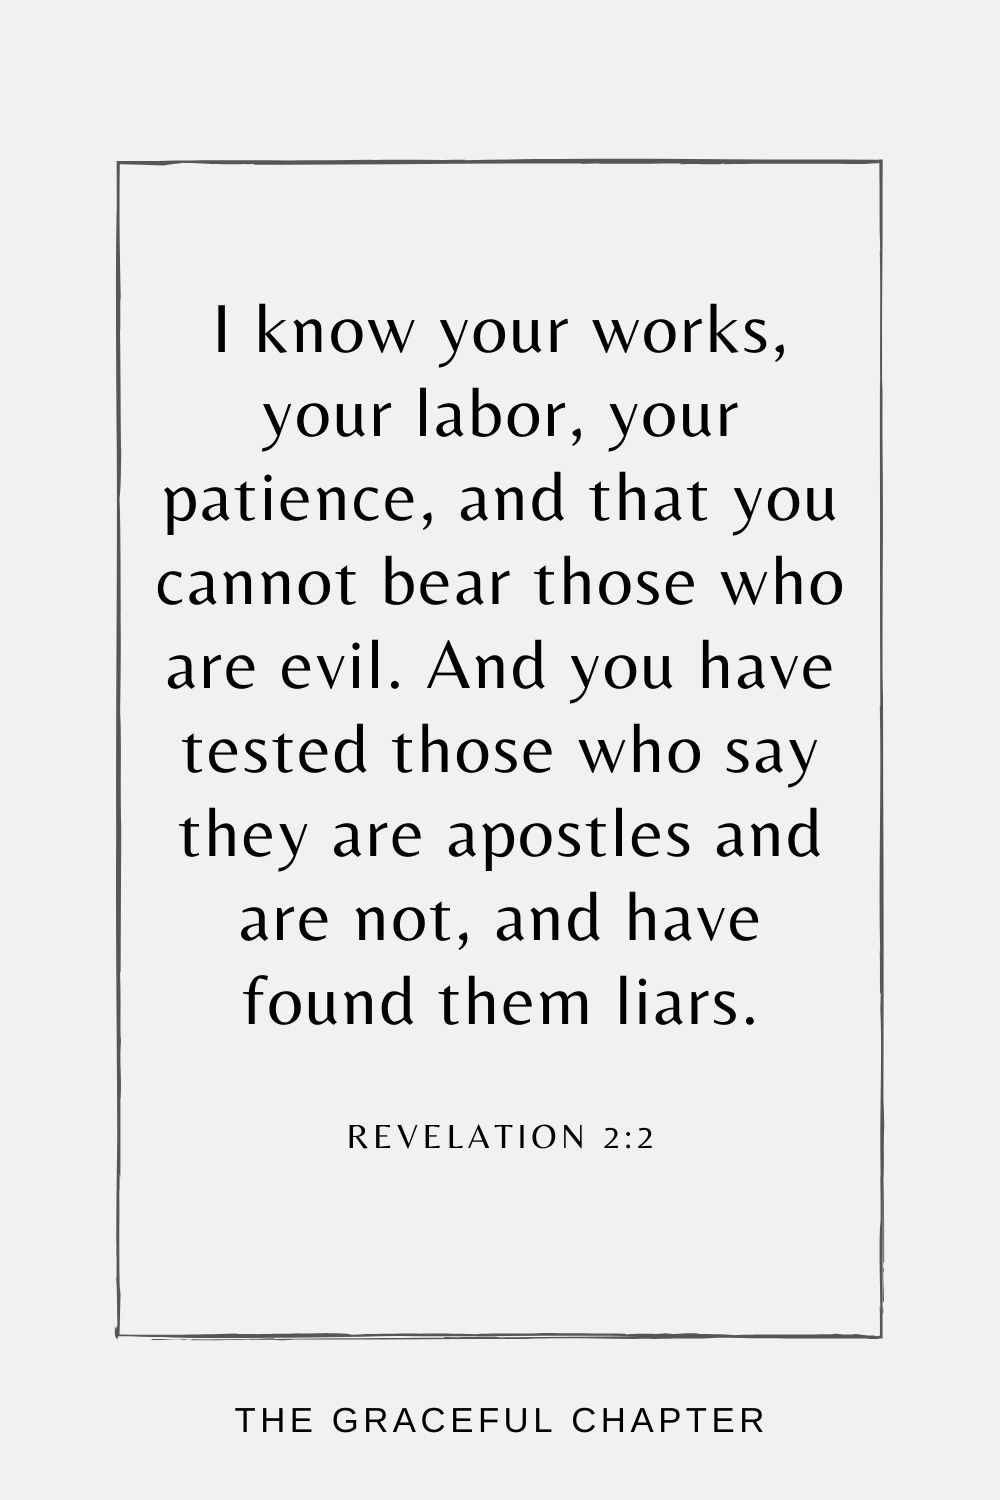 I know your works, your labor, your patience, and that you cannot bear those who are evil. And you have tested those who say they are apostles and are not, and have found them liars; Revelation 2:2